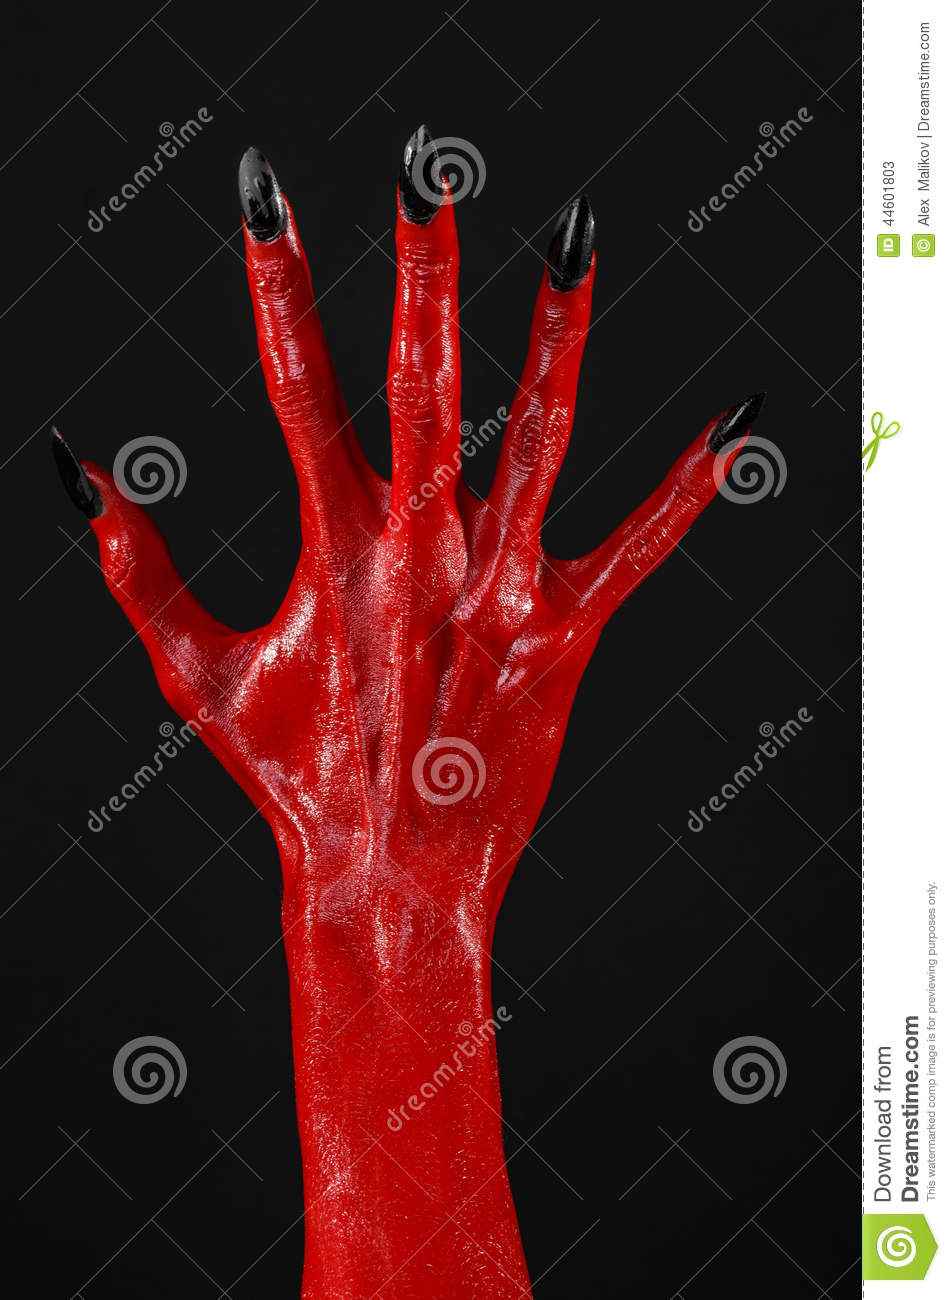 Red devils hands with black nails red hands of satan halloween red devil s hands with black nails red hands of satan halloween theme on a black background isolated lucifer horror biocorpaavc Gallery